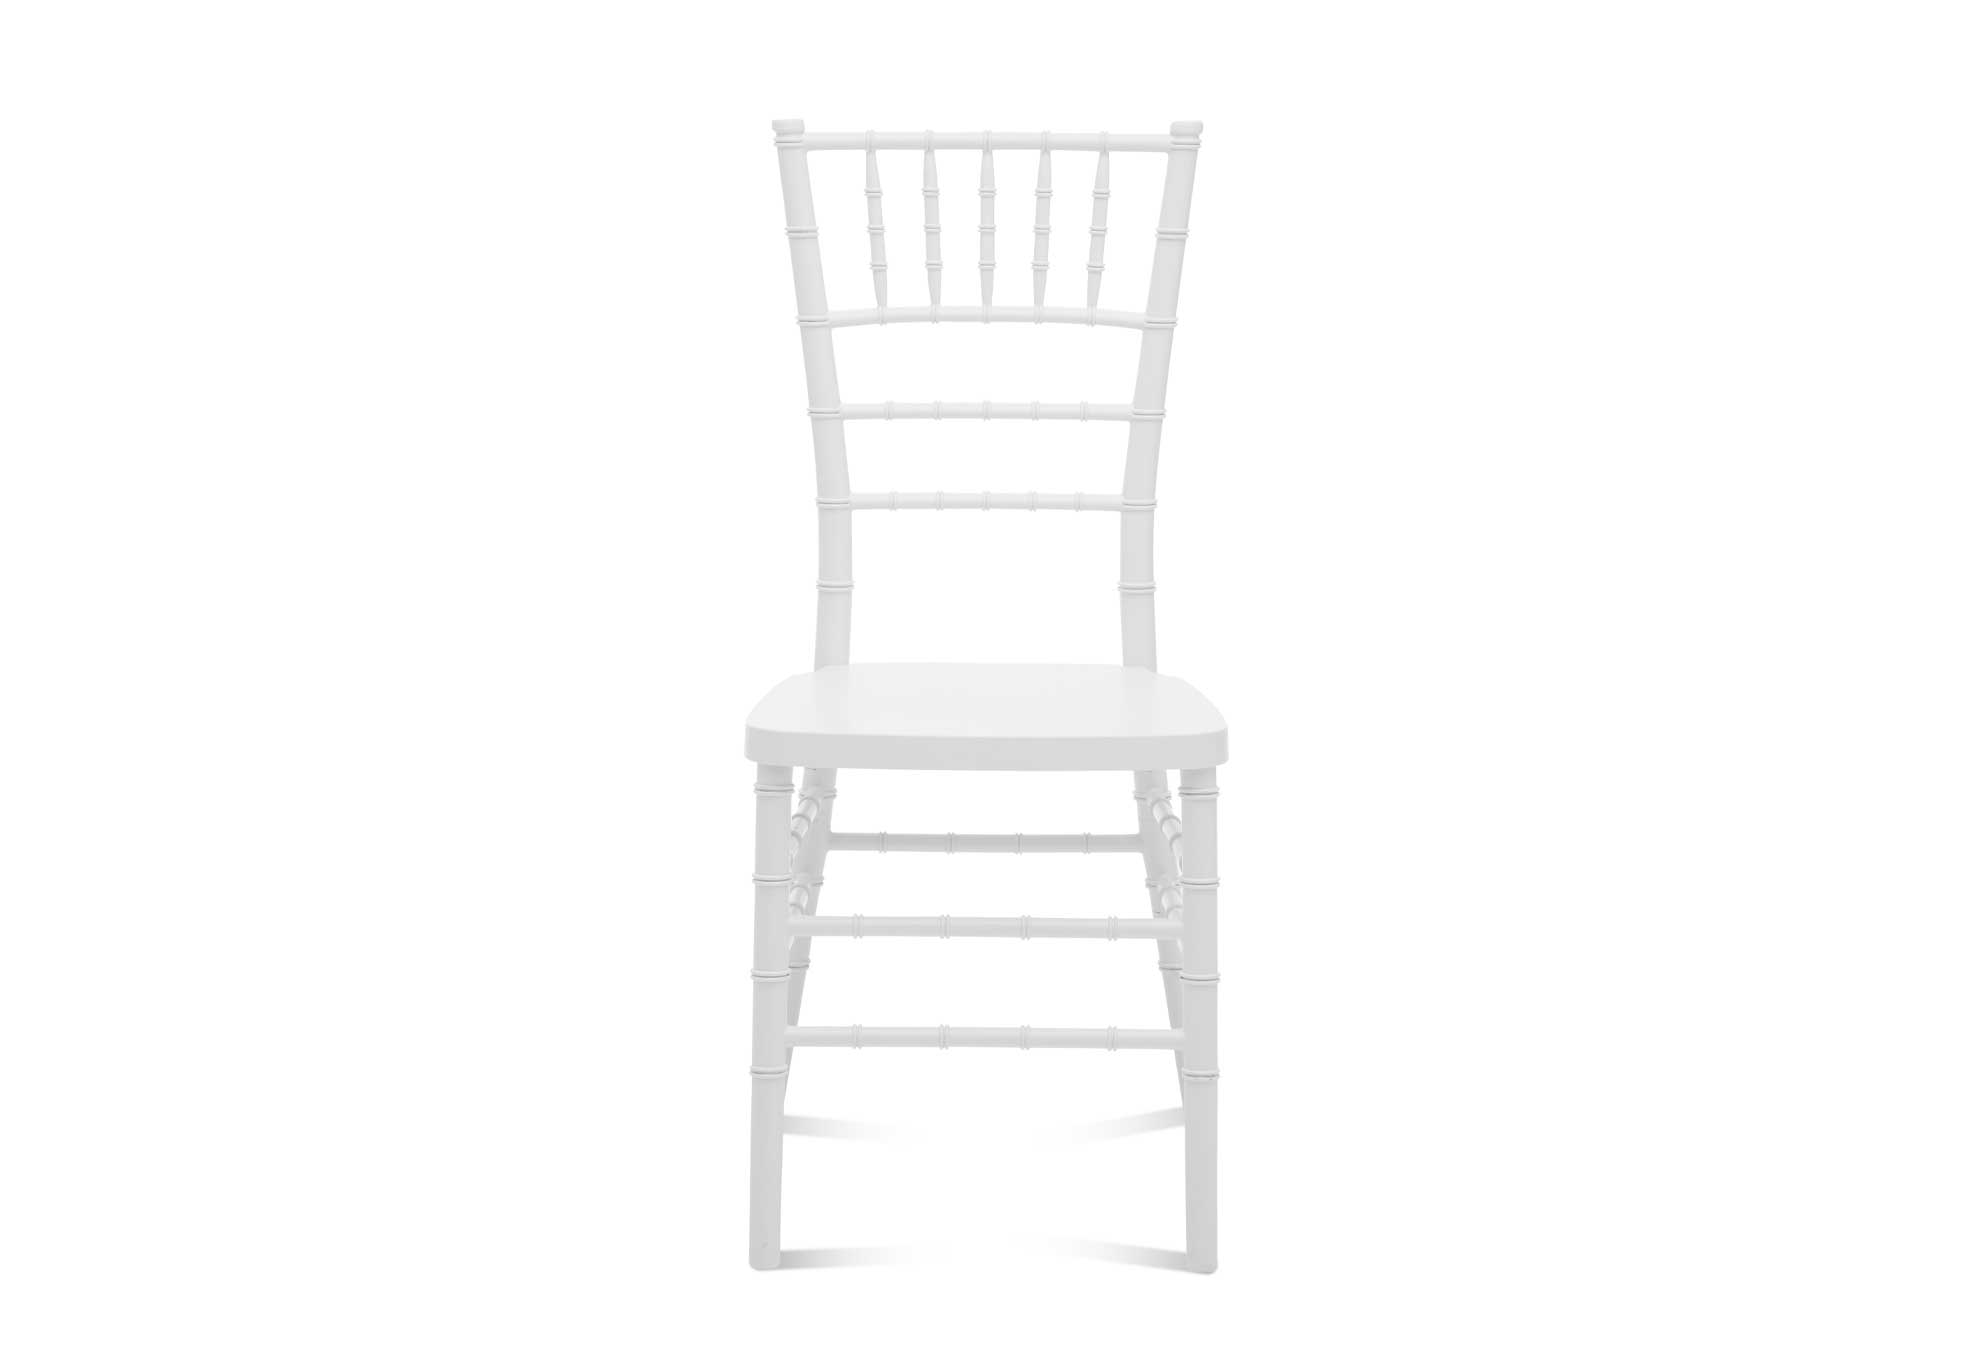 silk-estate-marquee-weddings-and-events-styling-and-hire-furniture-chairs-chivari-hero